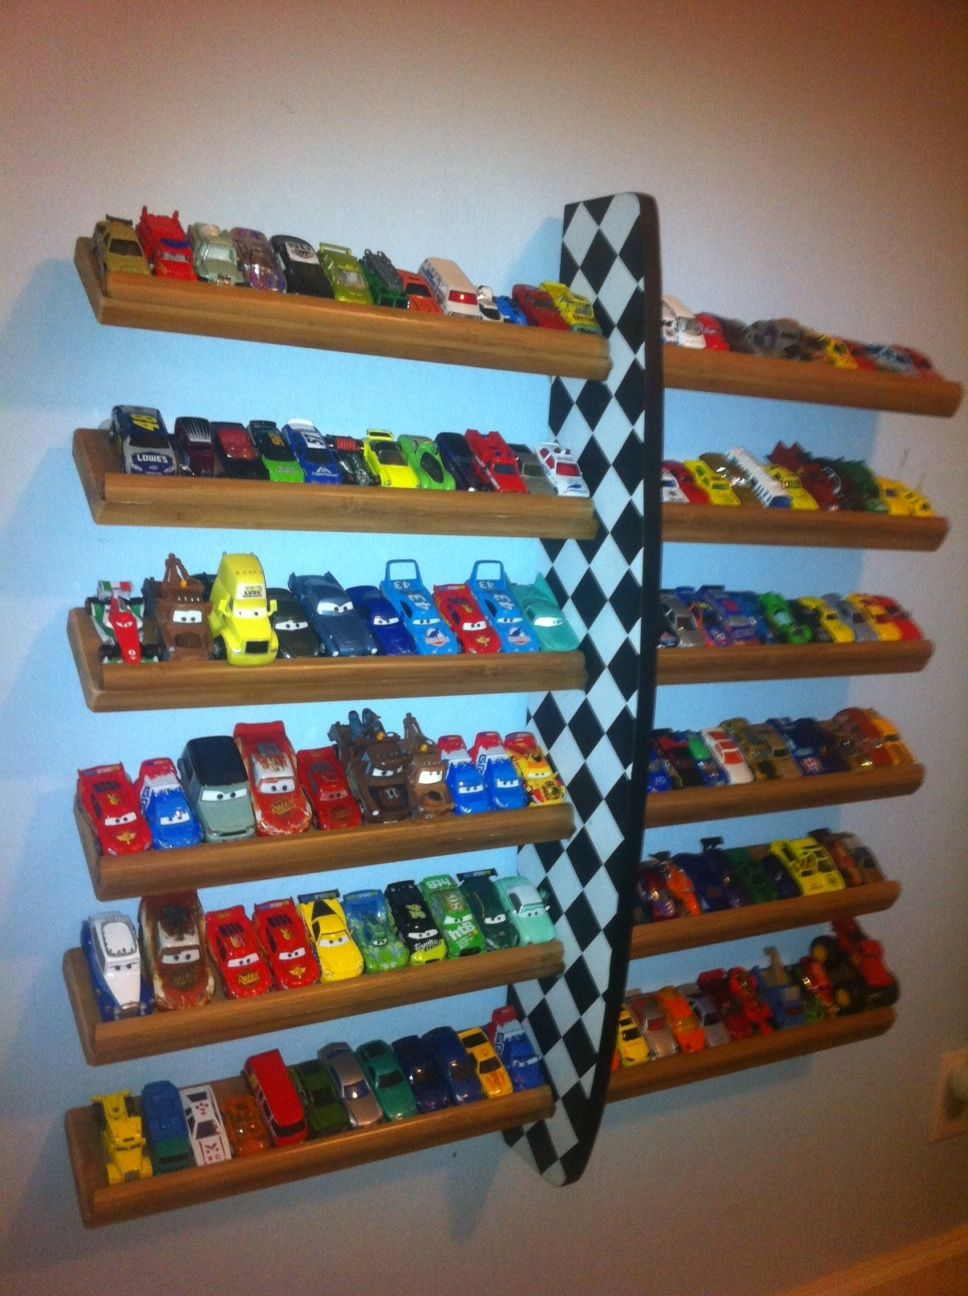 Boys car bedroom ideas - Hot Wheels Holder Can Somebody Please Make This For Talon Lol This Kids Name Was Talon Too Weird